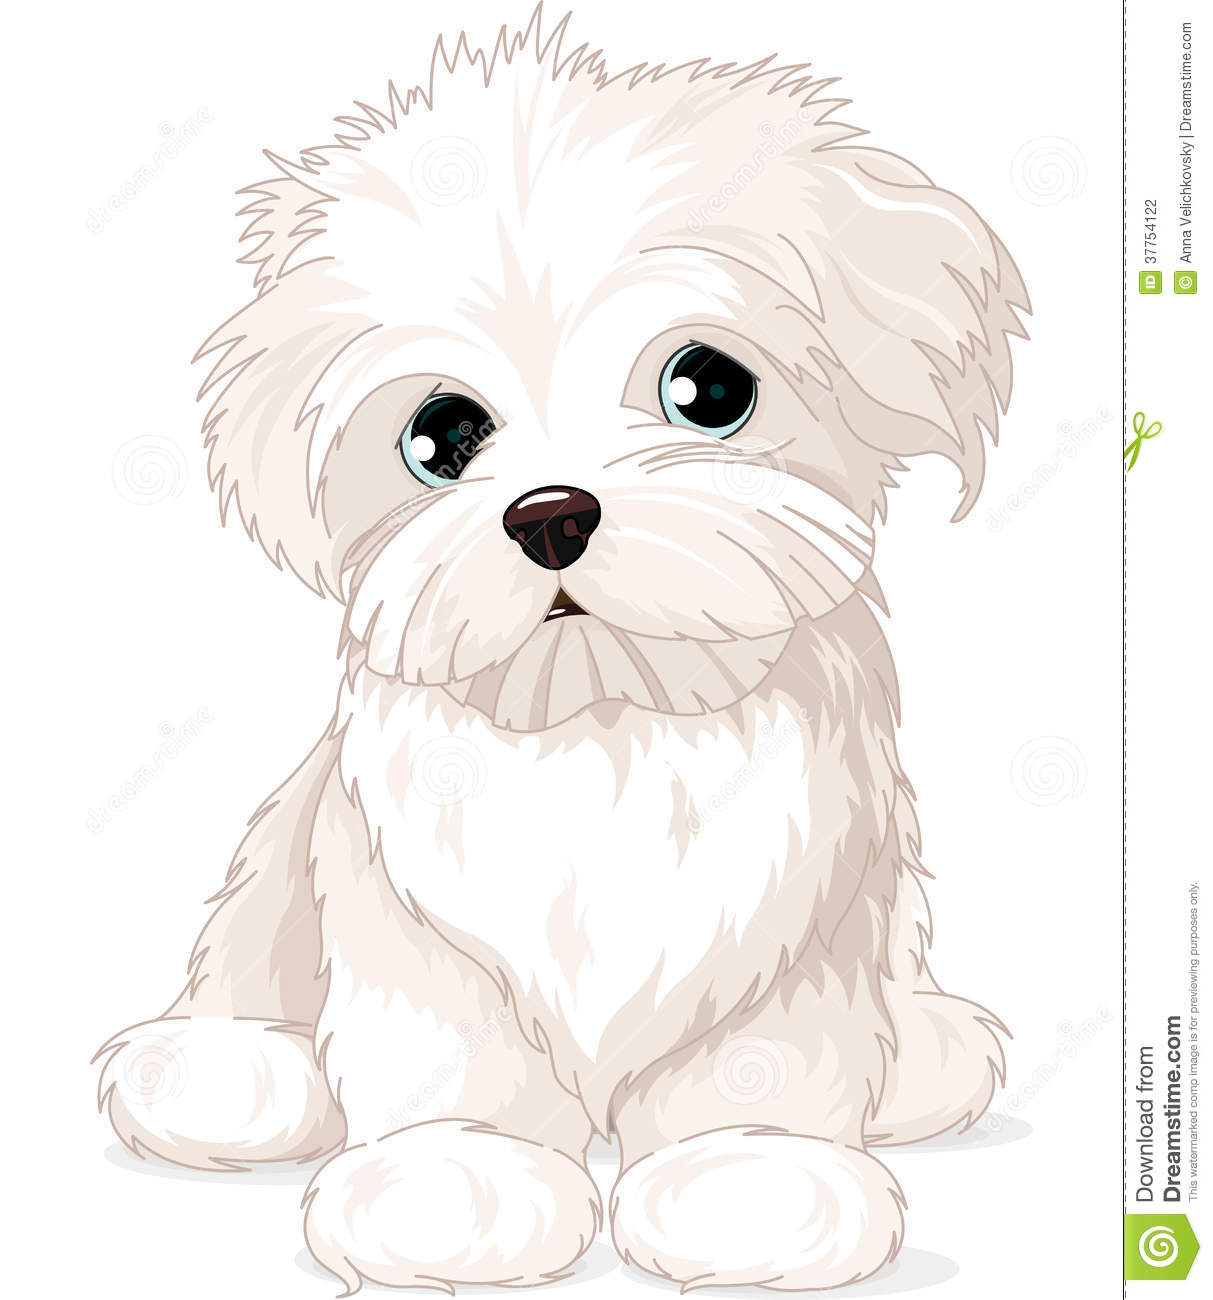 maltese dog clipart - photo #1